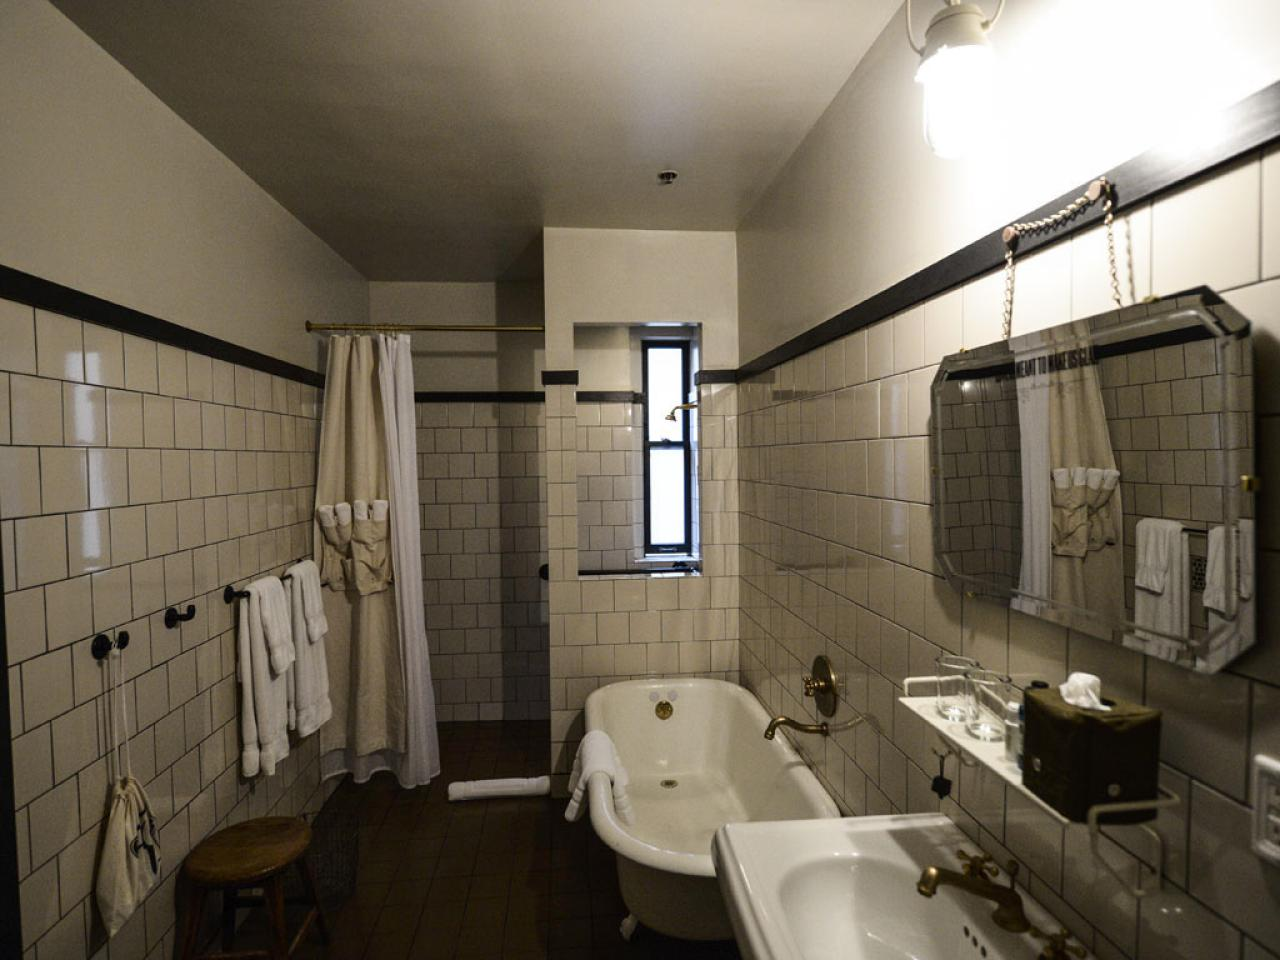 Opulent Interior Remodel Small Bathroom With White Wall Ceramic Tile